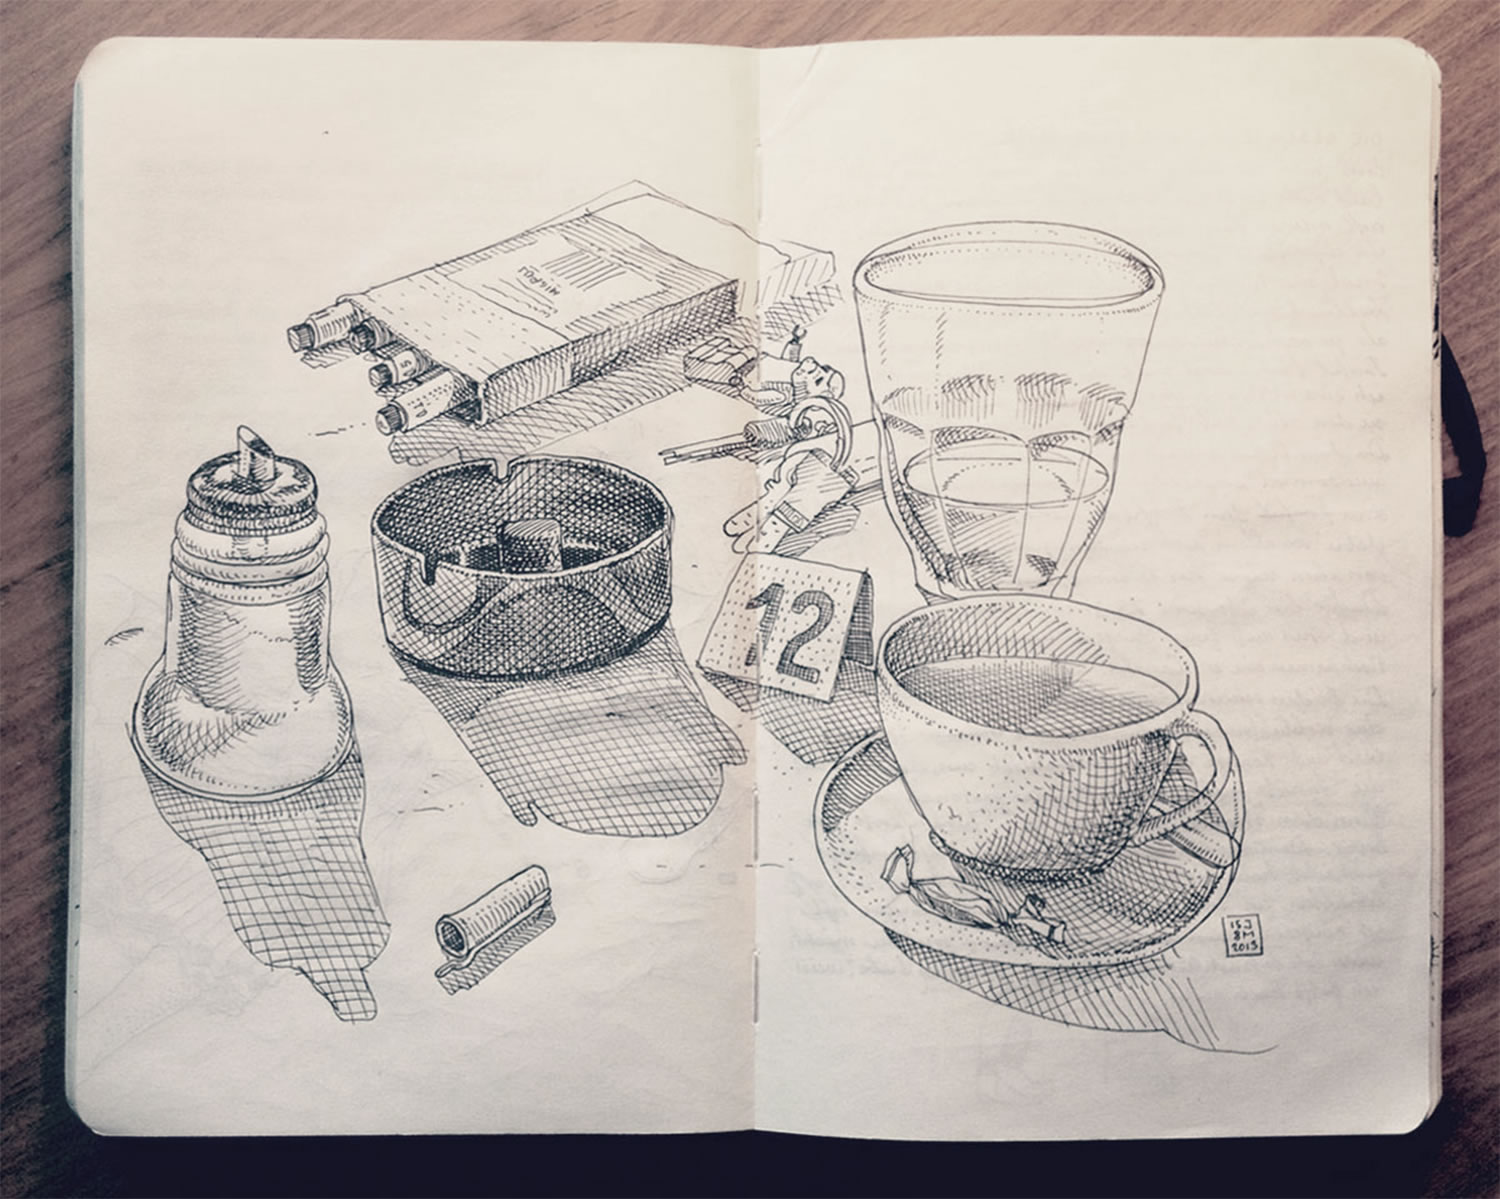 coffee, cigs and more on table, drawing by Jared Muralt